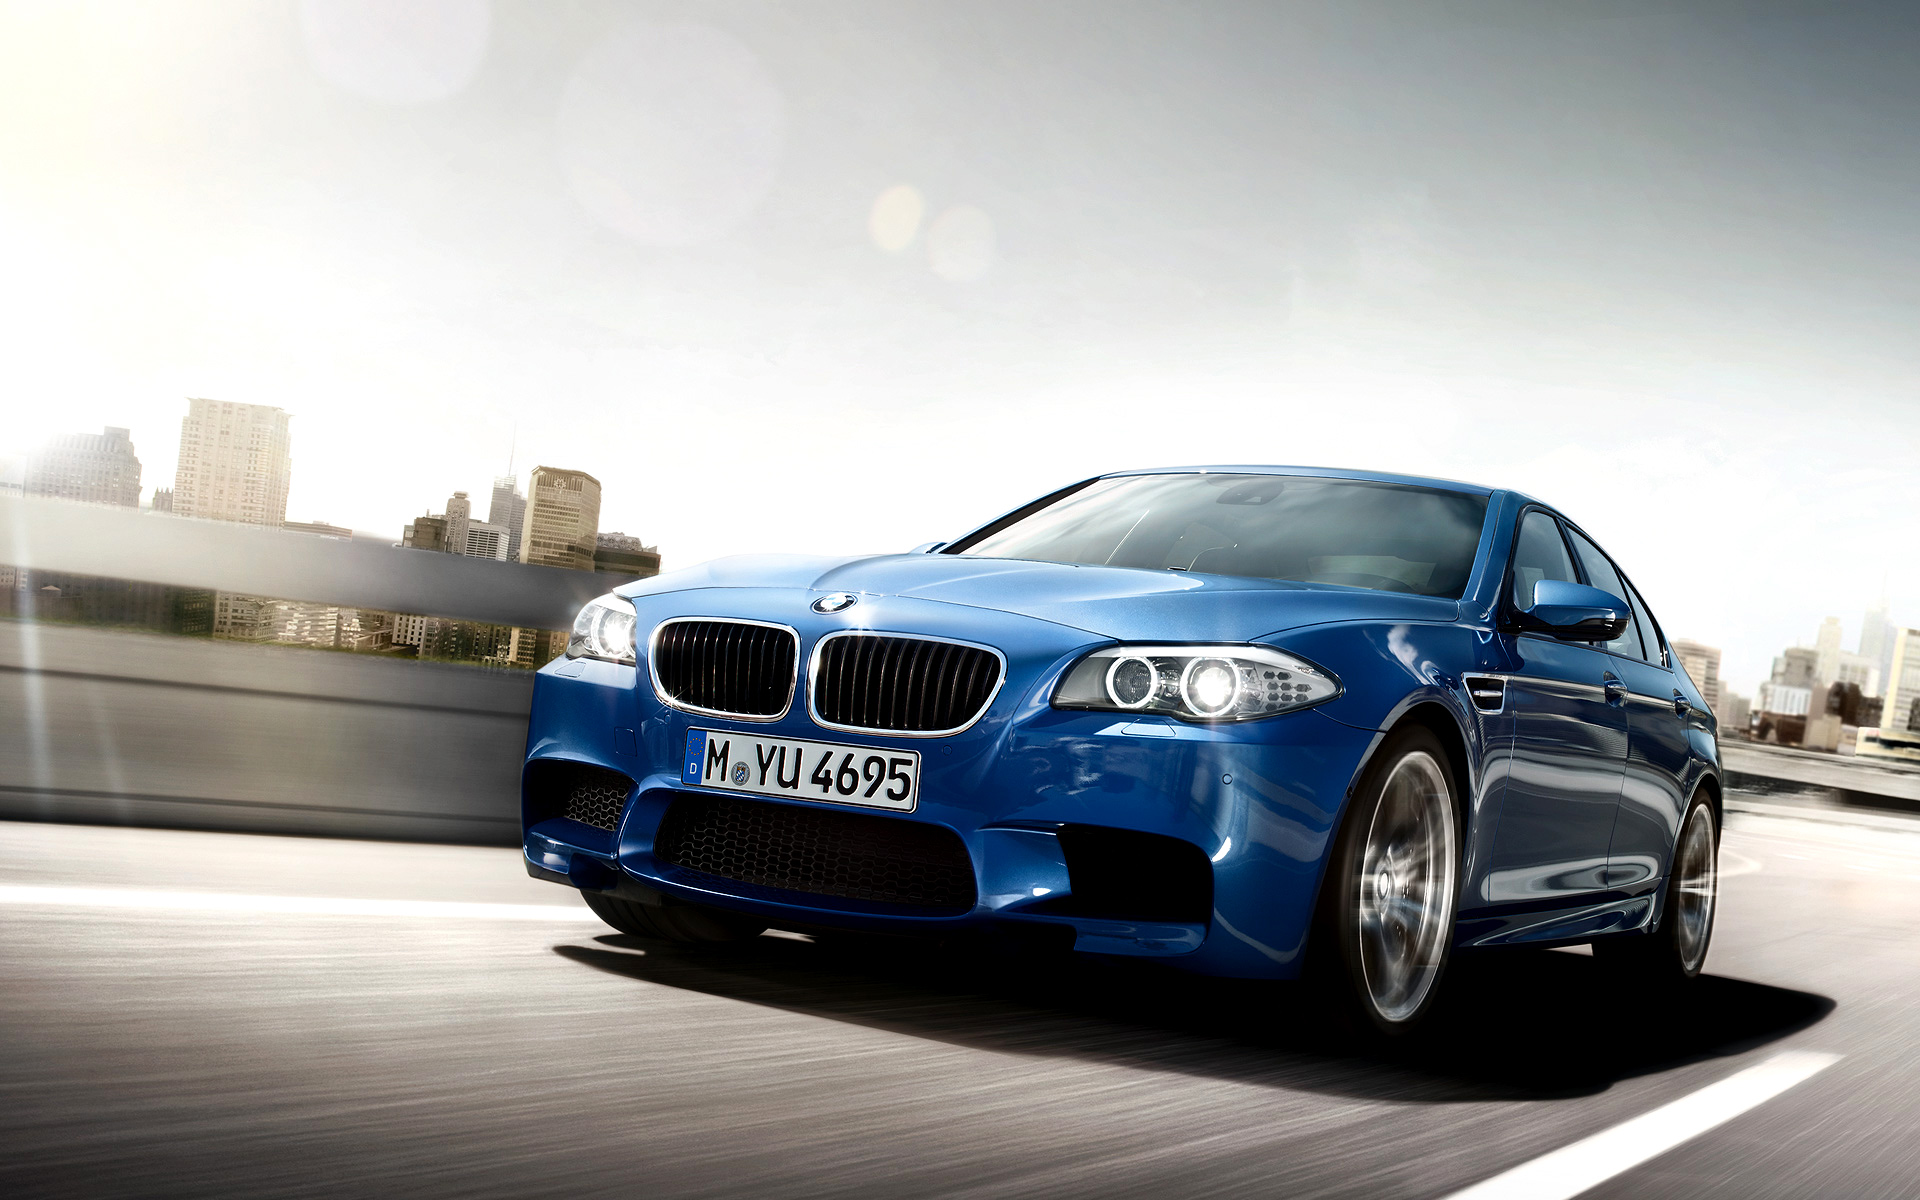 BMW M5 Wallpaper Image Picture